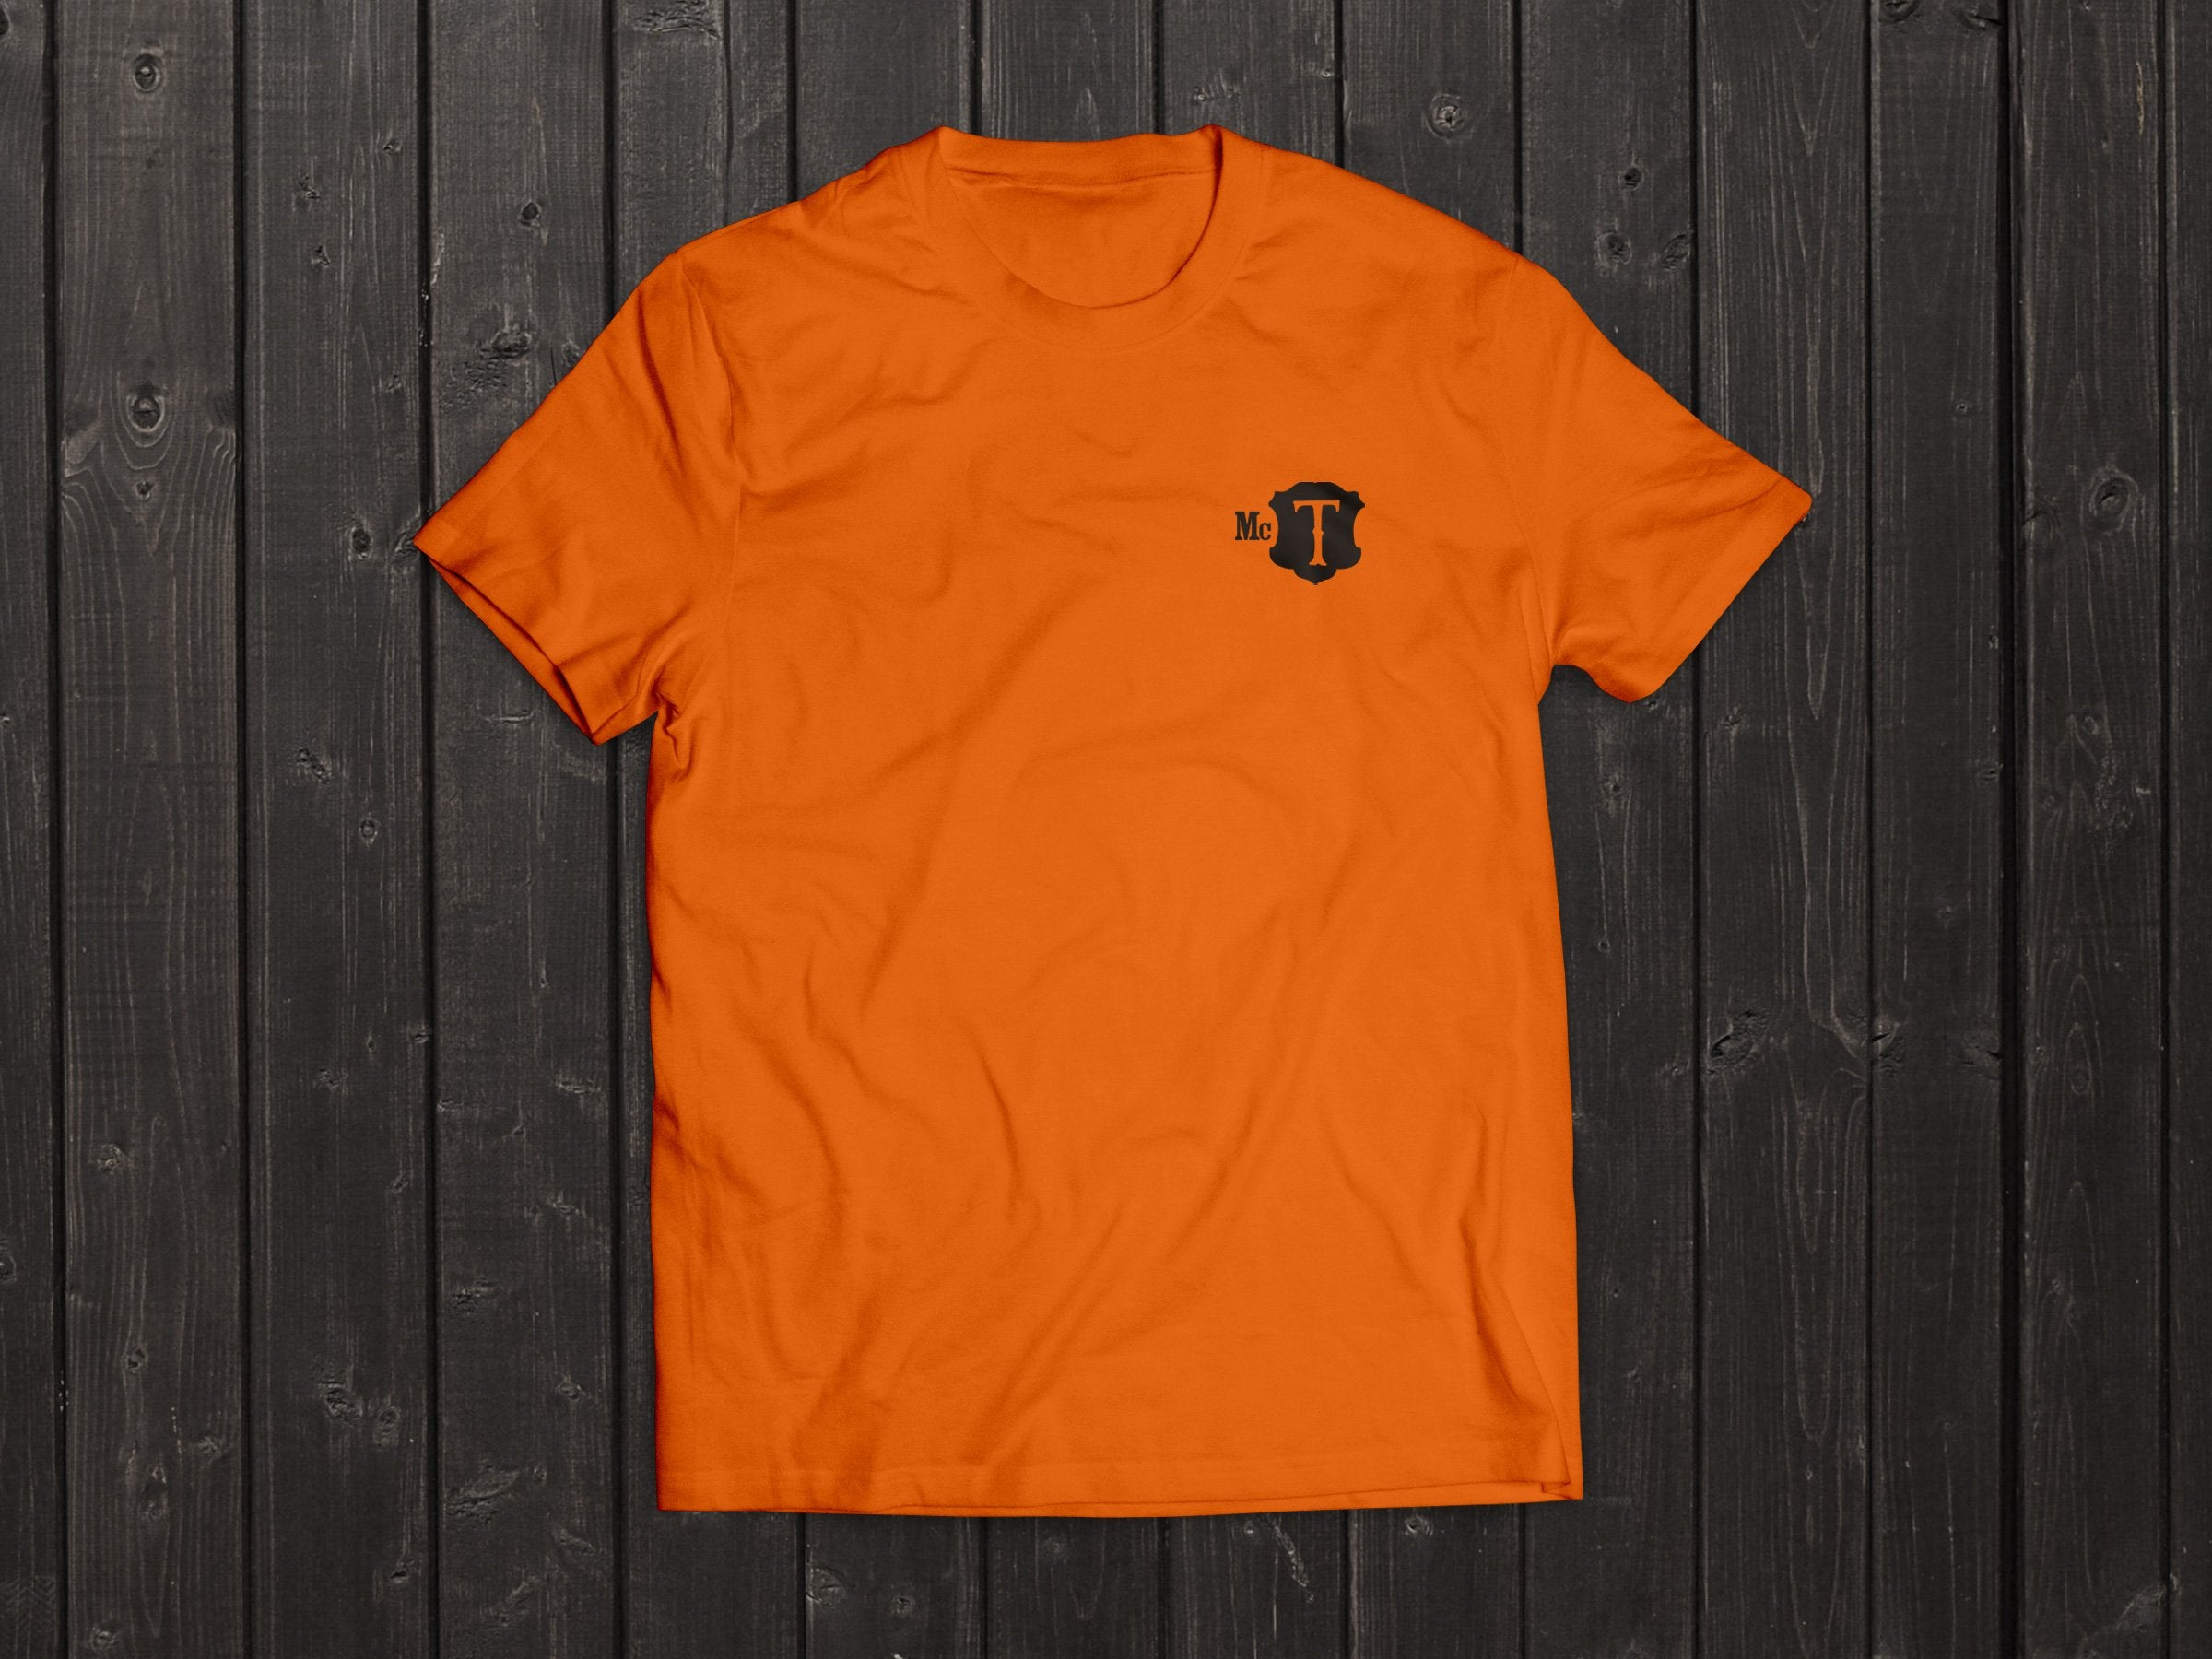 The McT Tony Singh T Shirt in Orange